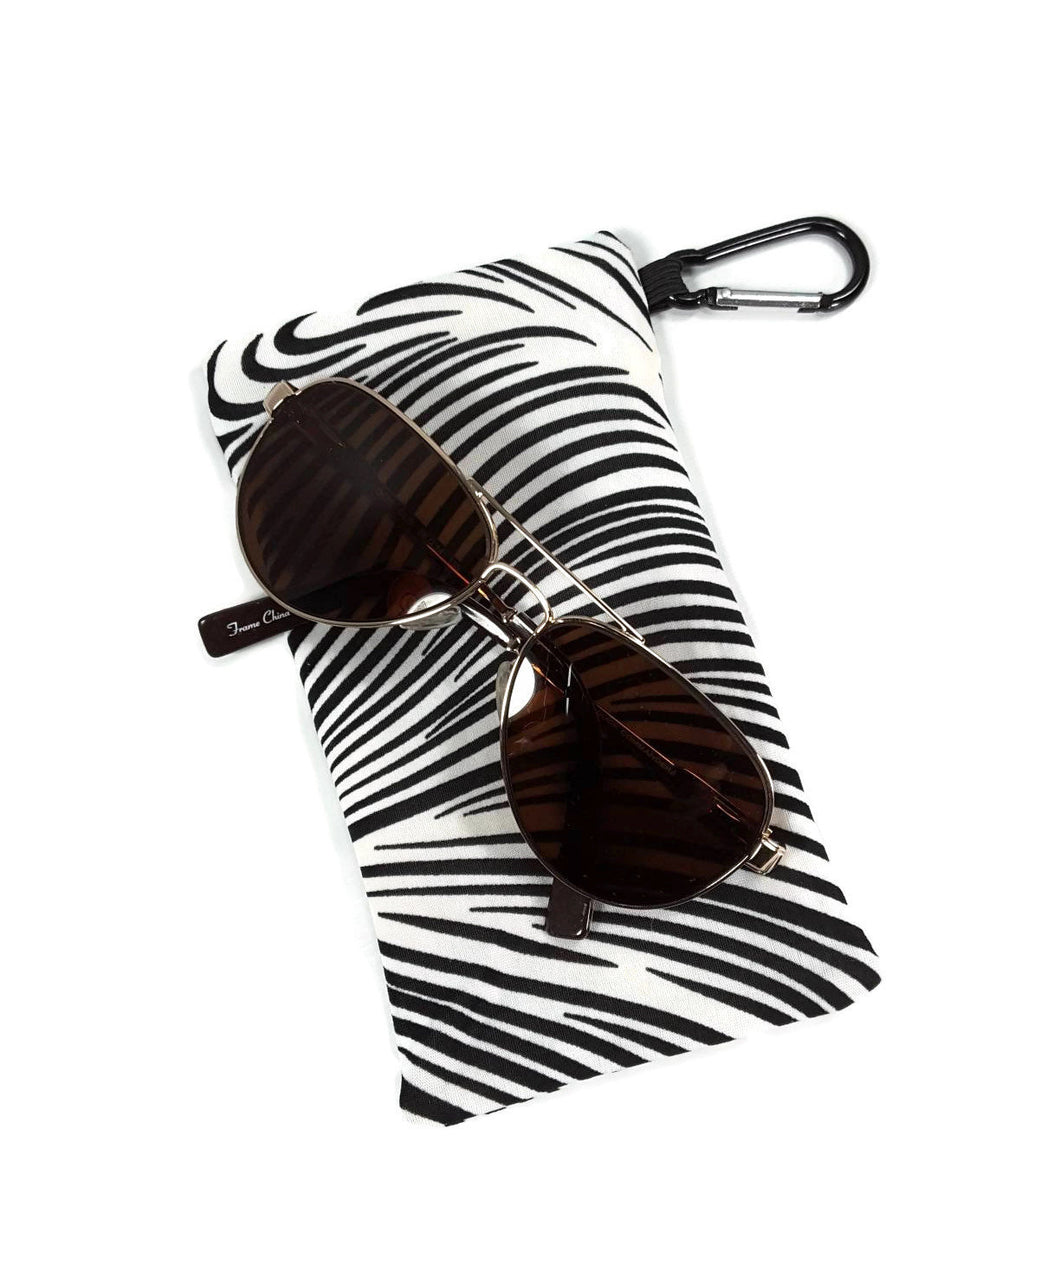 Sunglasses Glasses Case Snappy Snap Closure Black and White Zebra Print - Fliptastic Leos